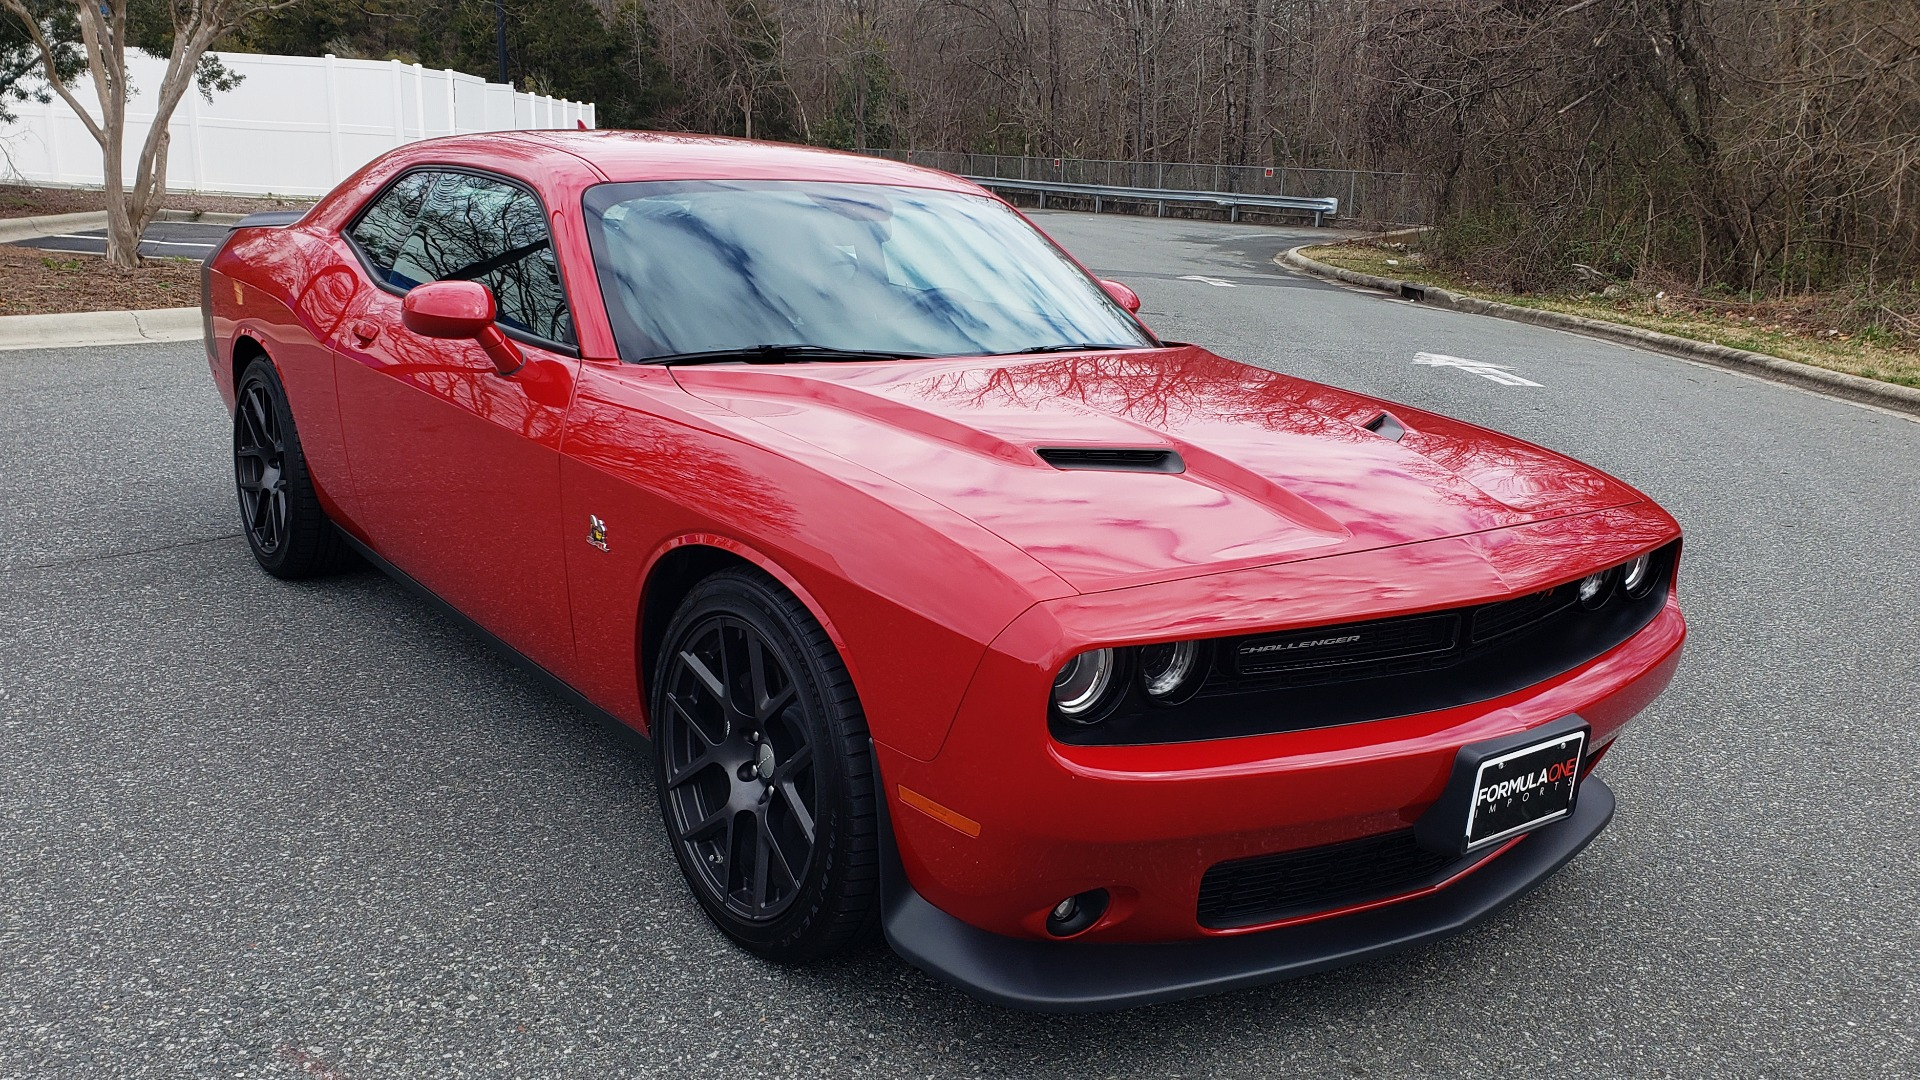 Used 2016 Dodge CHALLENGER R/T SCAT PACK / TECHNOLOGY / ALPINE / 6-SPEED MAN for sale Sold at Formula Imports in Charlotte NC 28227 5